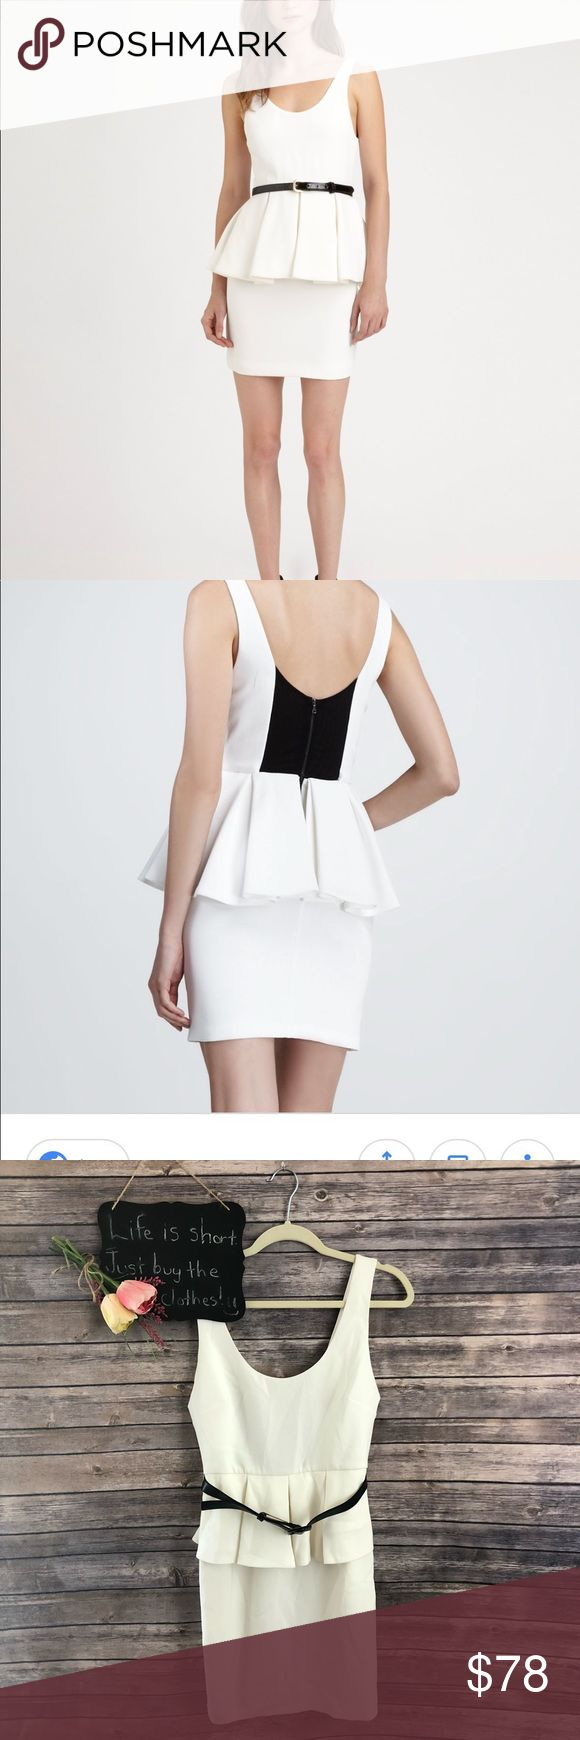 """Alice and Olivia sleeveless white peplum dress Alice and Olivia sleeveless white belted peplum dress. Gorgeous condition!! Size 8.  16.5"""" arm pit to arm pit.  34"""" length. Alice + Olivia Dresses"""